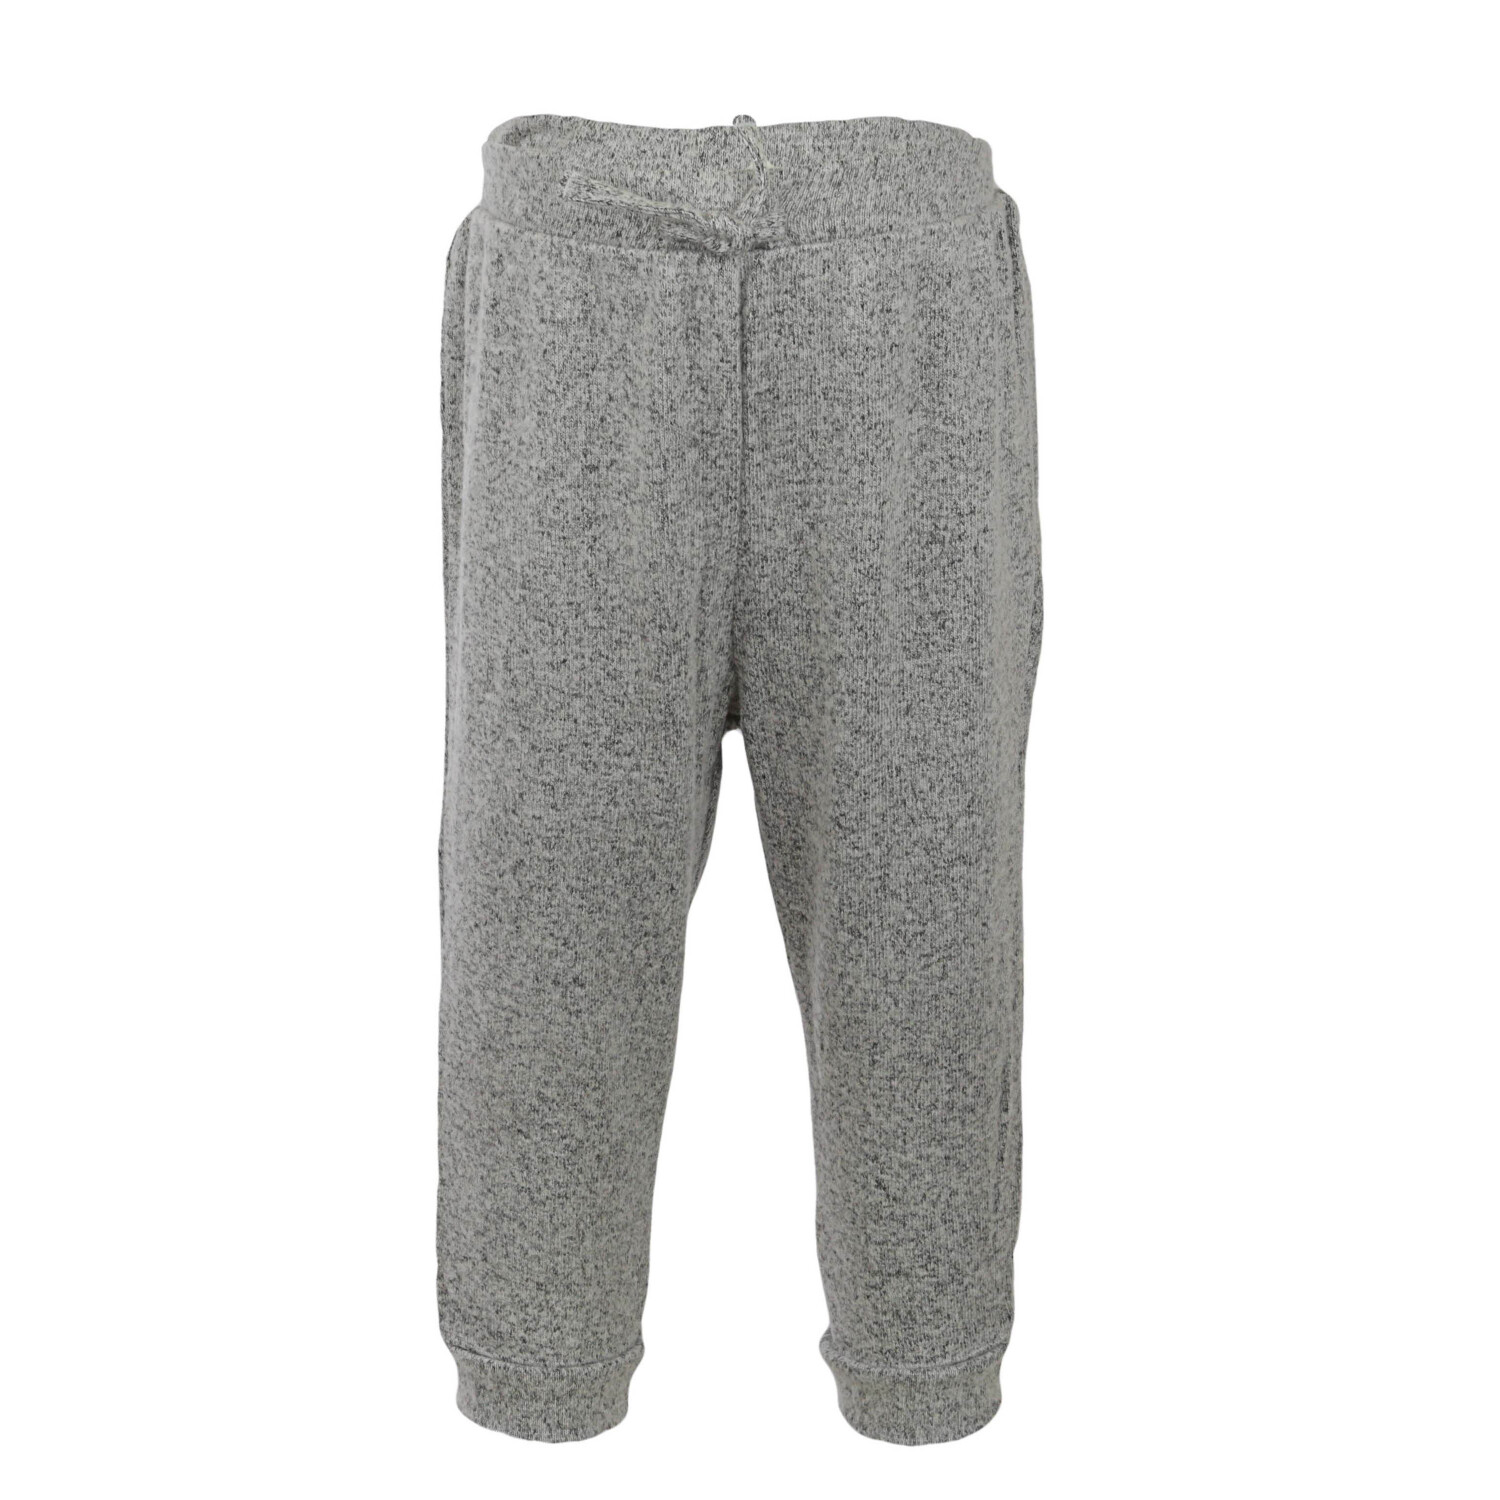 Janie And Jack Marled Jogger Pants - 0-3 Months - Heather Grey